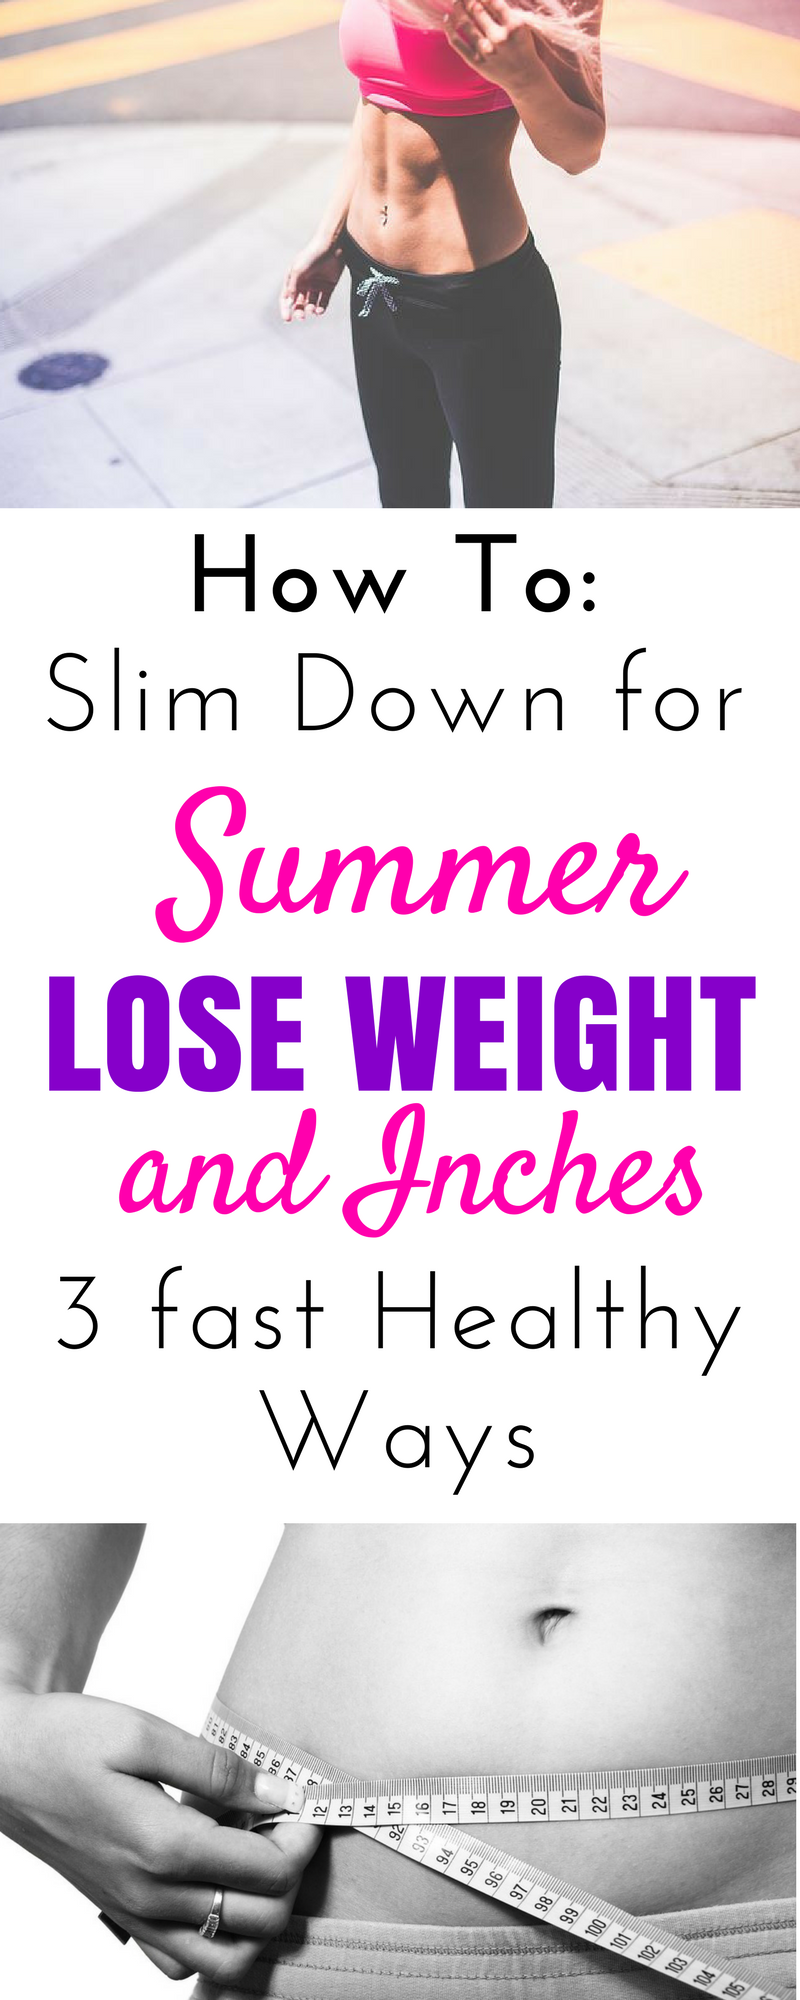 How to lose weight in 3 days without exercise and diet